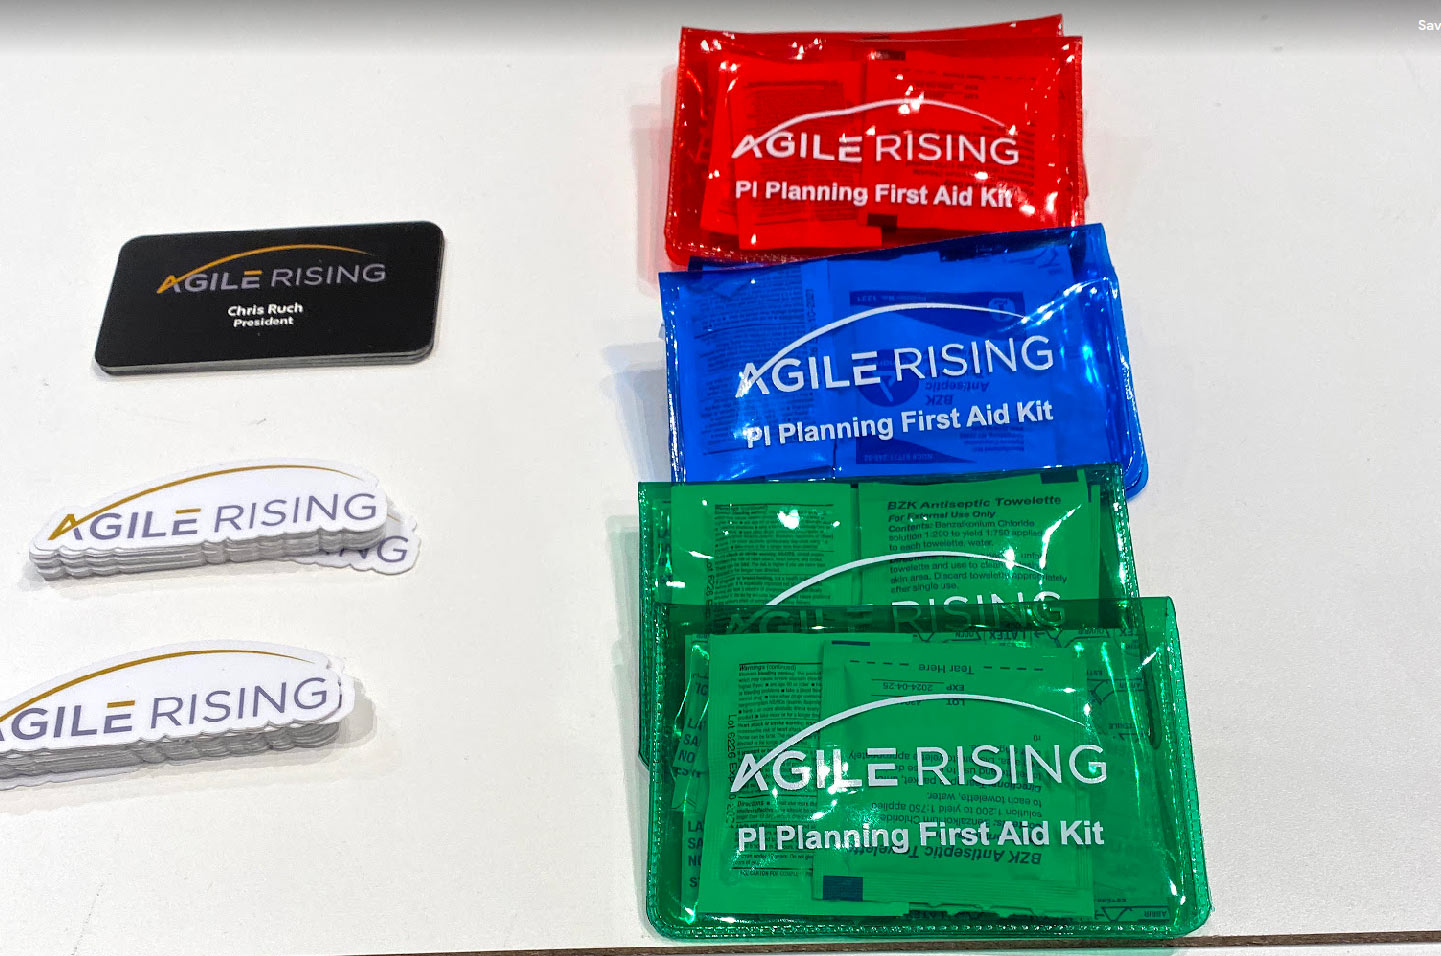 PI planning first aid kit by Agile Rising.